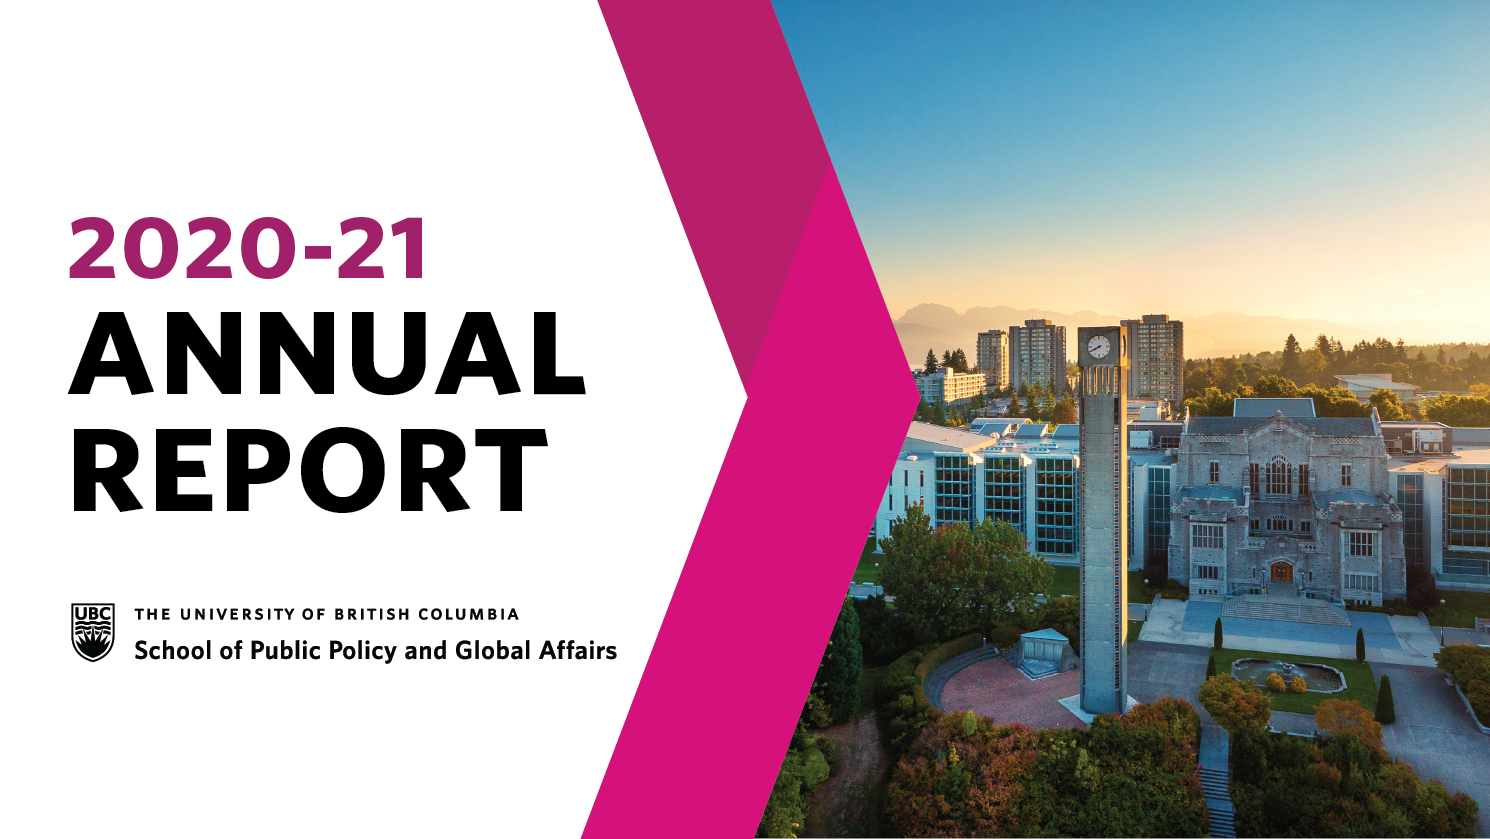 2020-2021 Annual Report Promotion